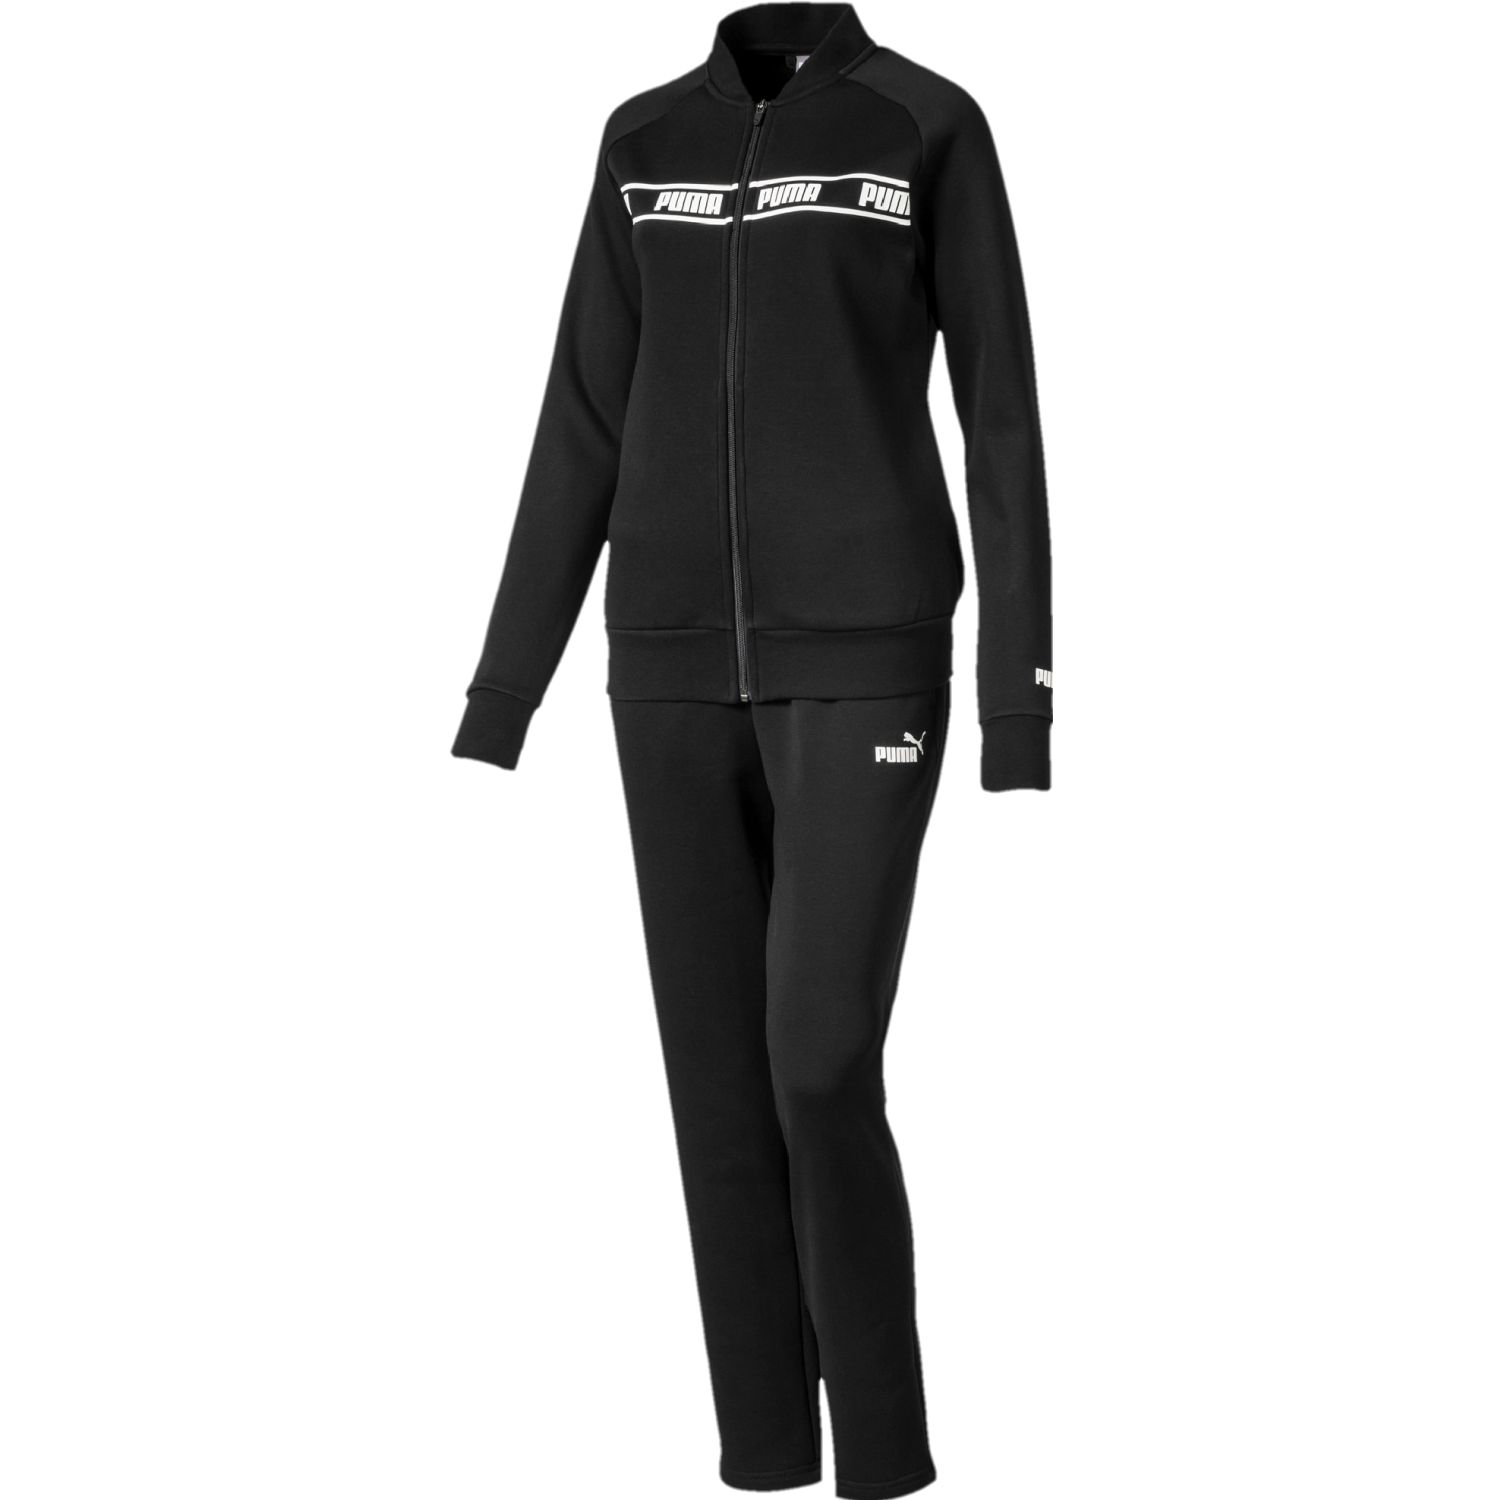 Puma amplified sweat suit Negro / blanco Sets Deportivos Tops y Bottoms